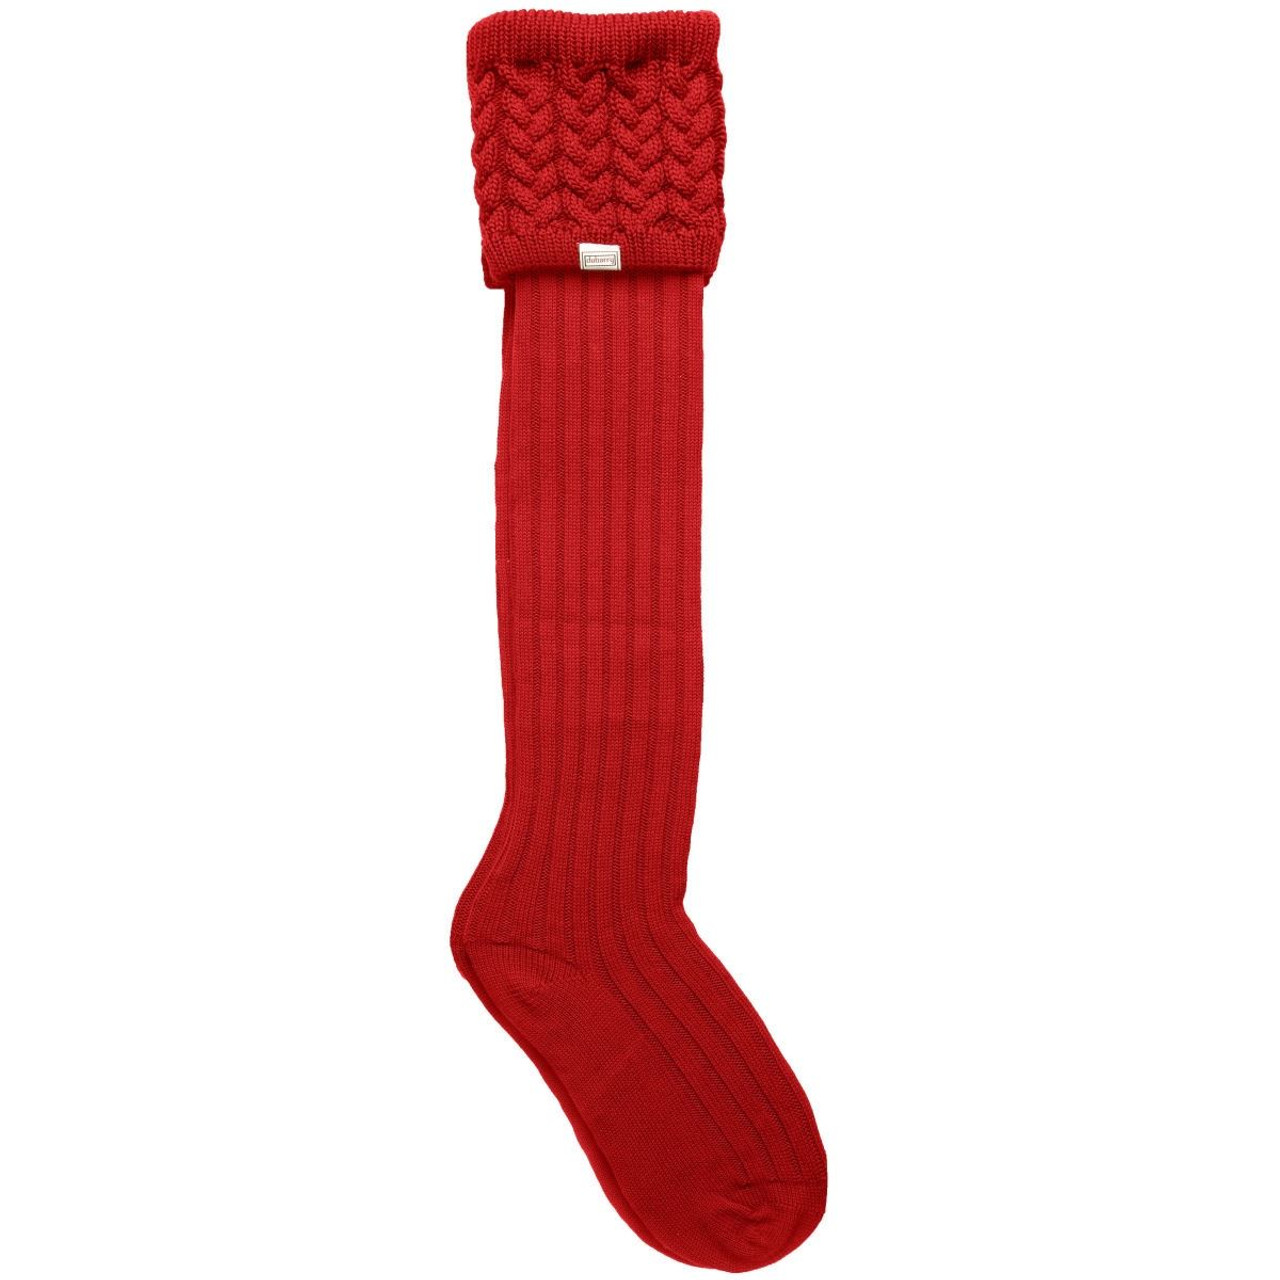 Dubarry Trinity Knitted Sock in Merlot